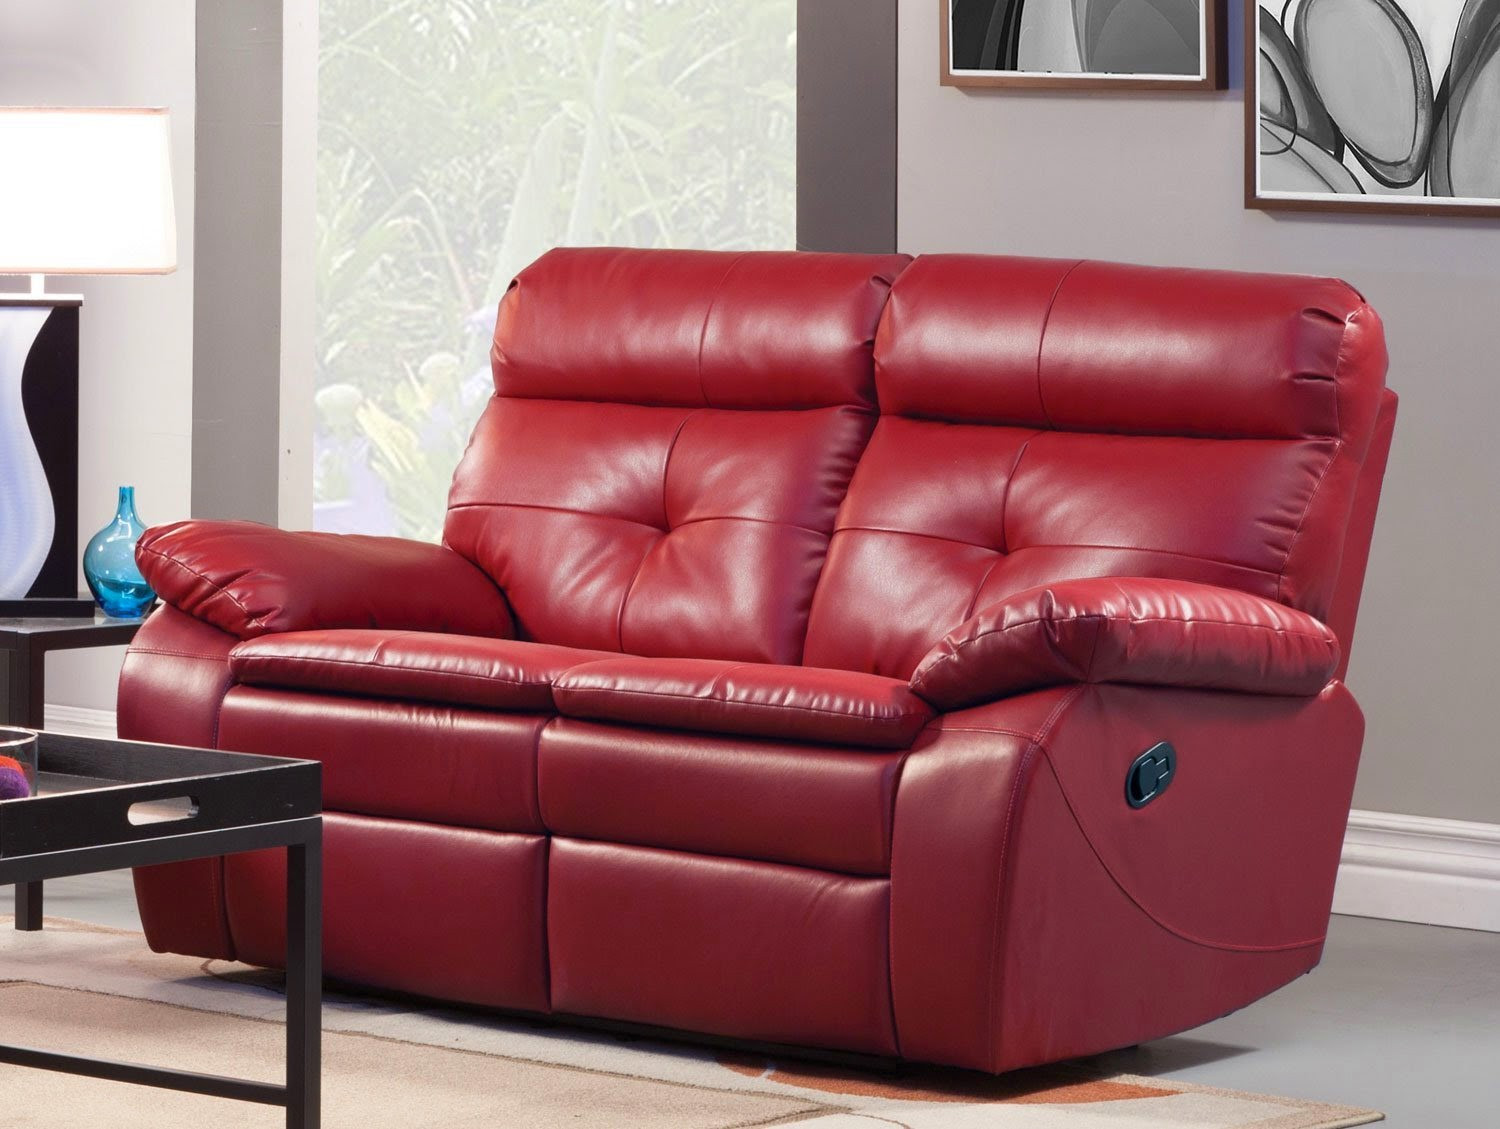 Best ideas about Red Recliner Sofa . Save or Pin The Best Reclining Sofa Reviews Red Leather Reclining Now.